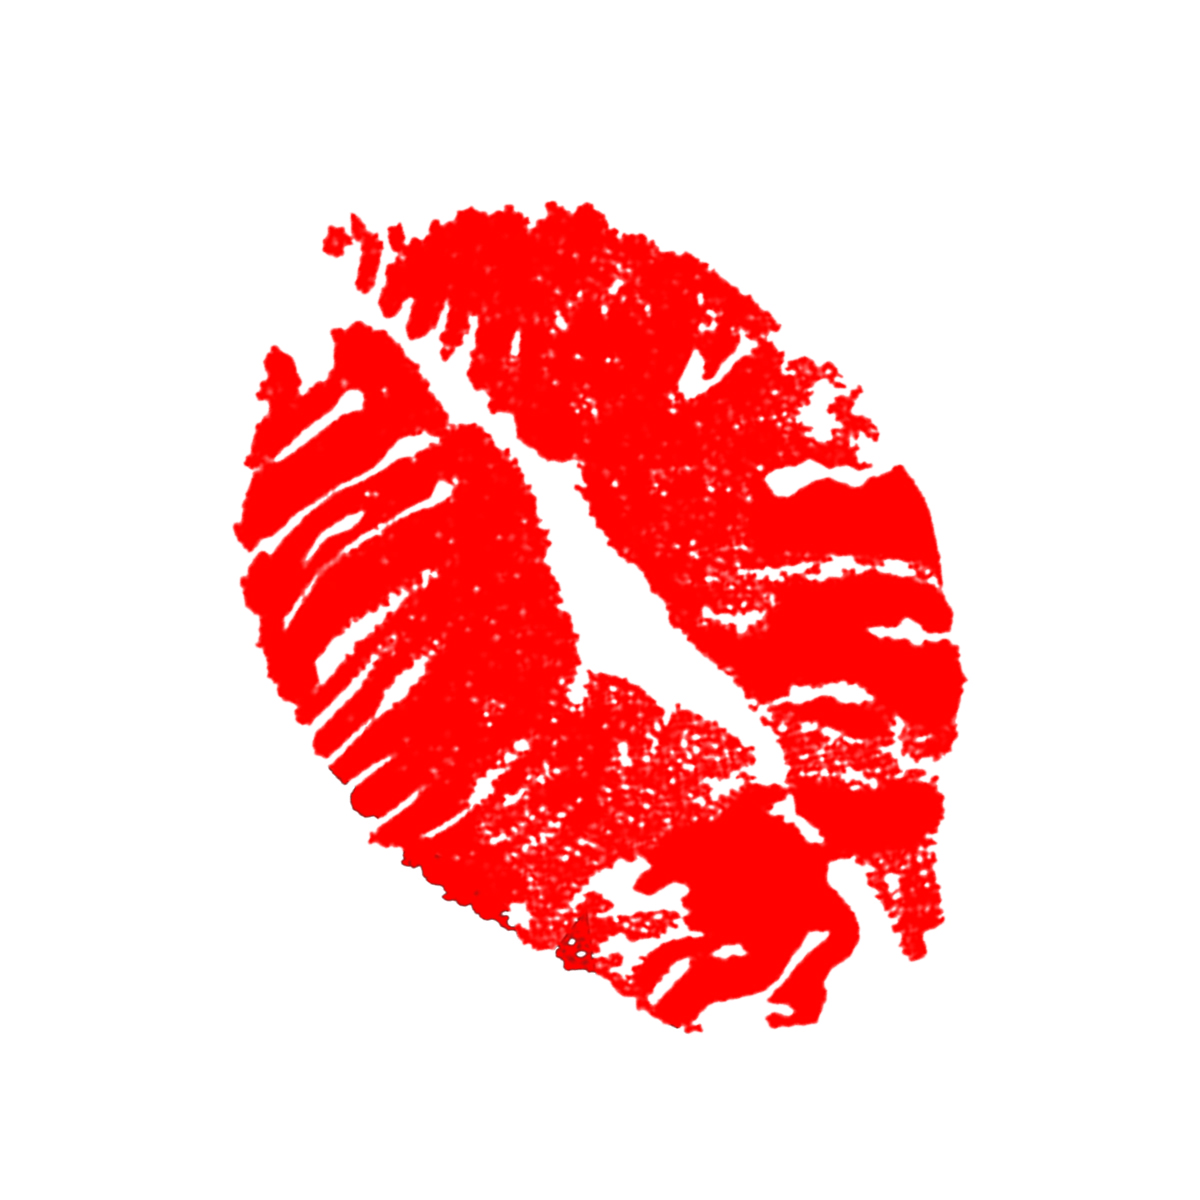 KESTON LIPS ONLY LOGO 5.jpg